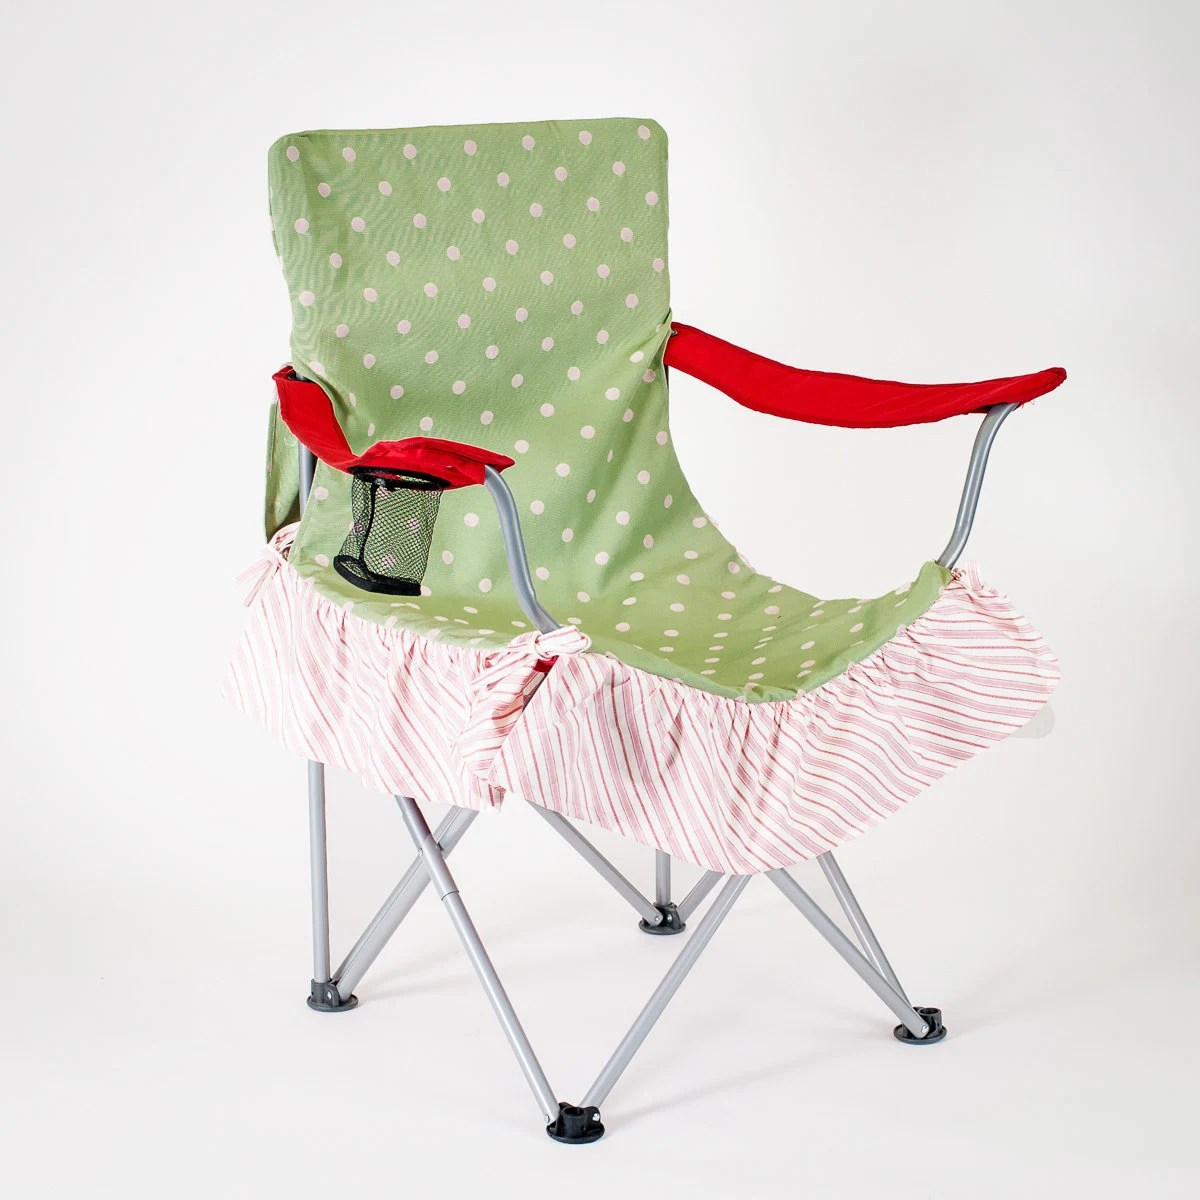 Green Chair Covers Preppy Green And Pink Polka Dot Chair Cover For Glamping